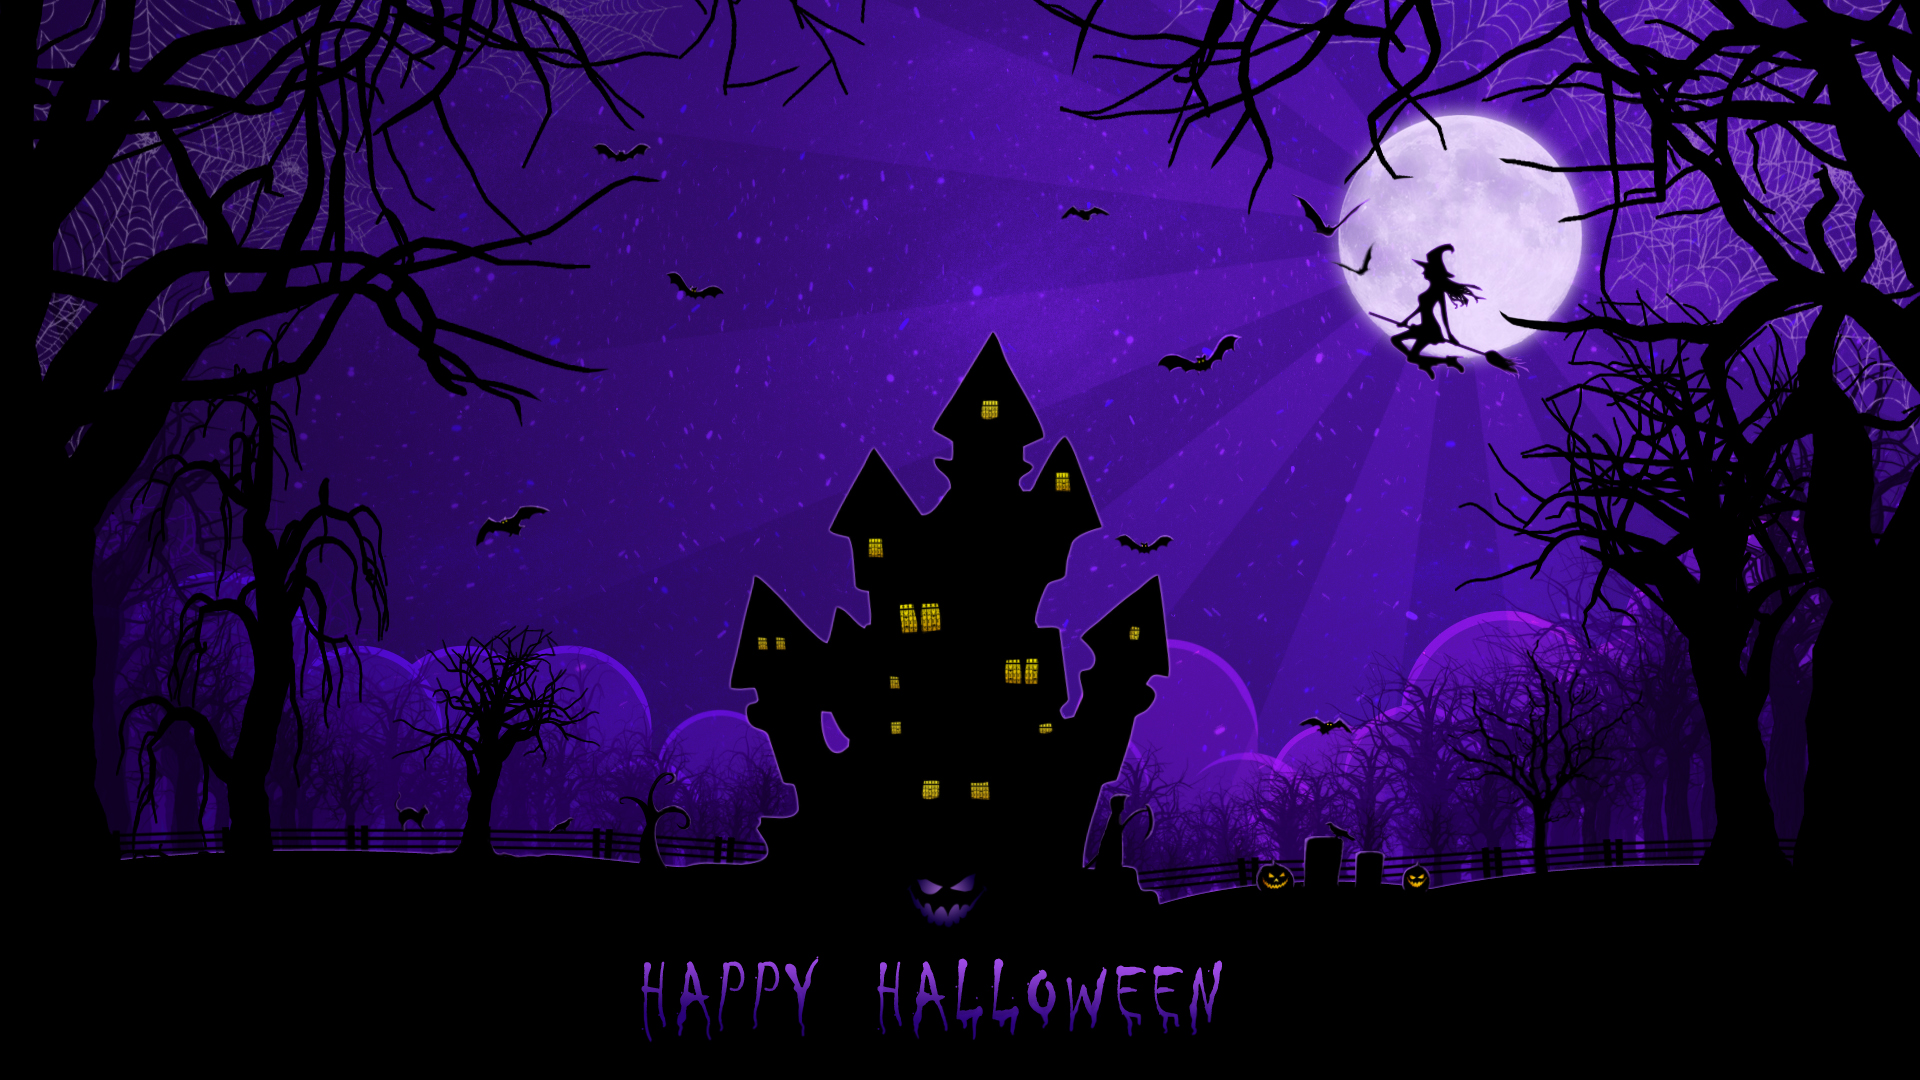 Spooky-Halloween-Images-wallpaper-wp38010404